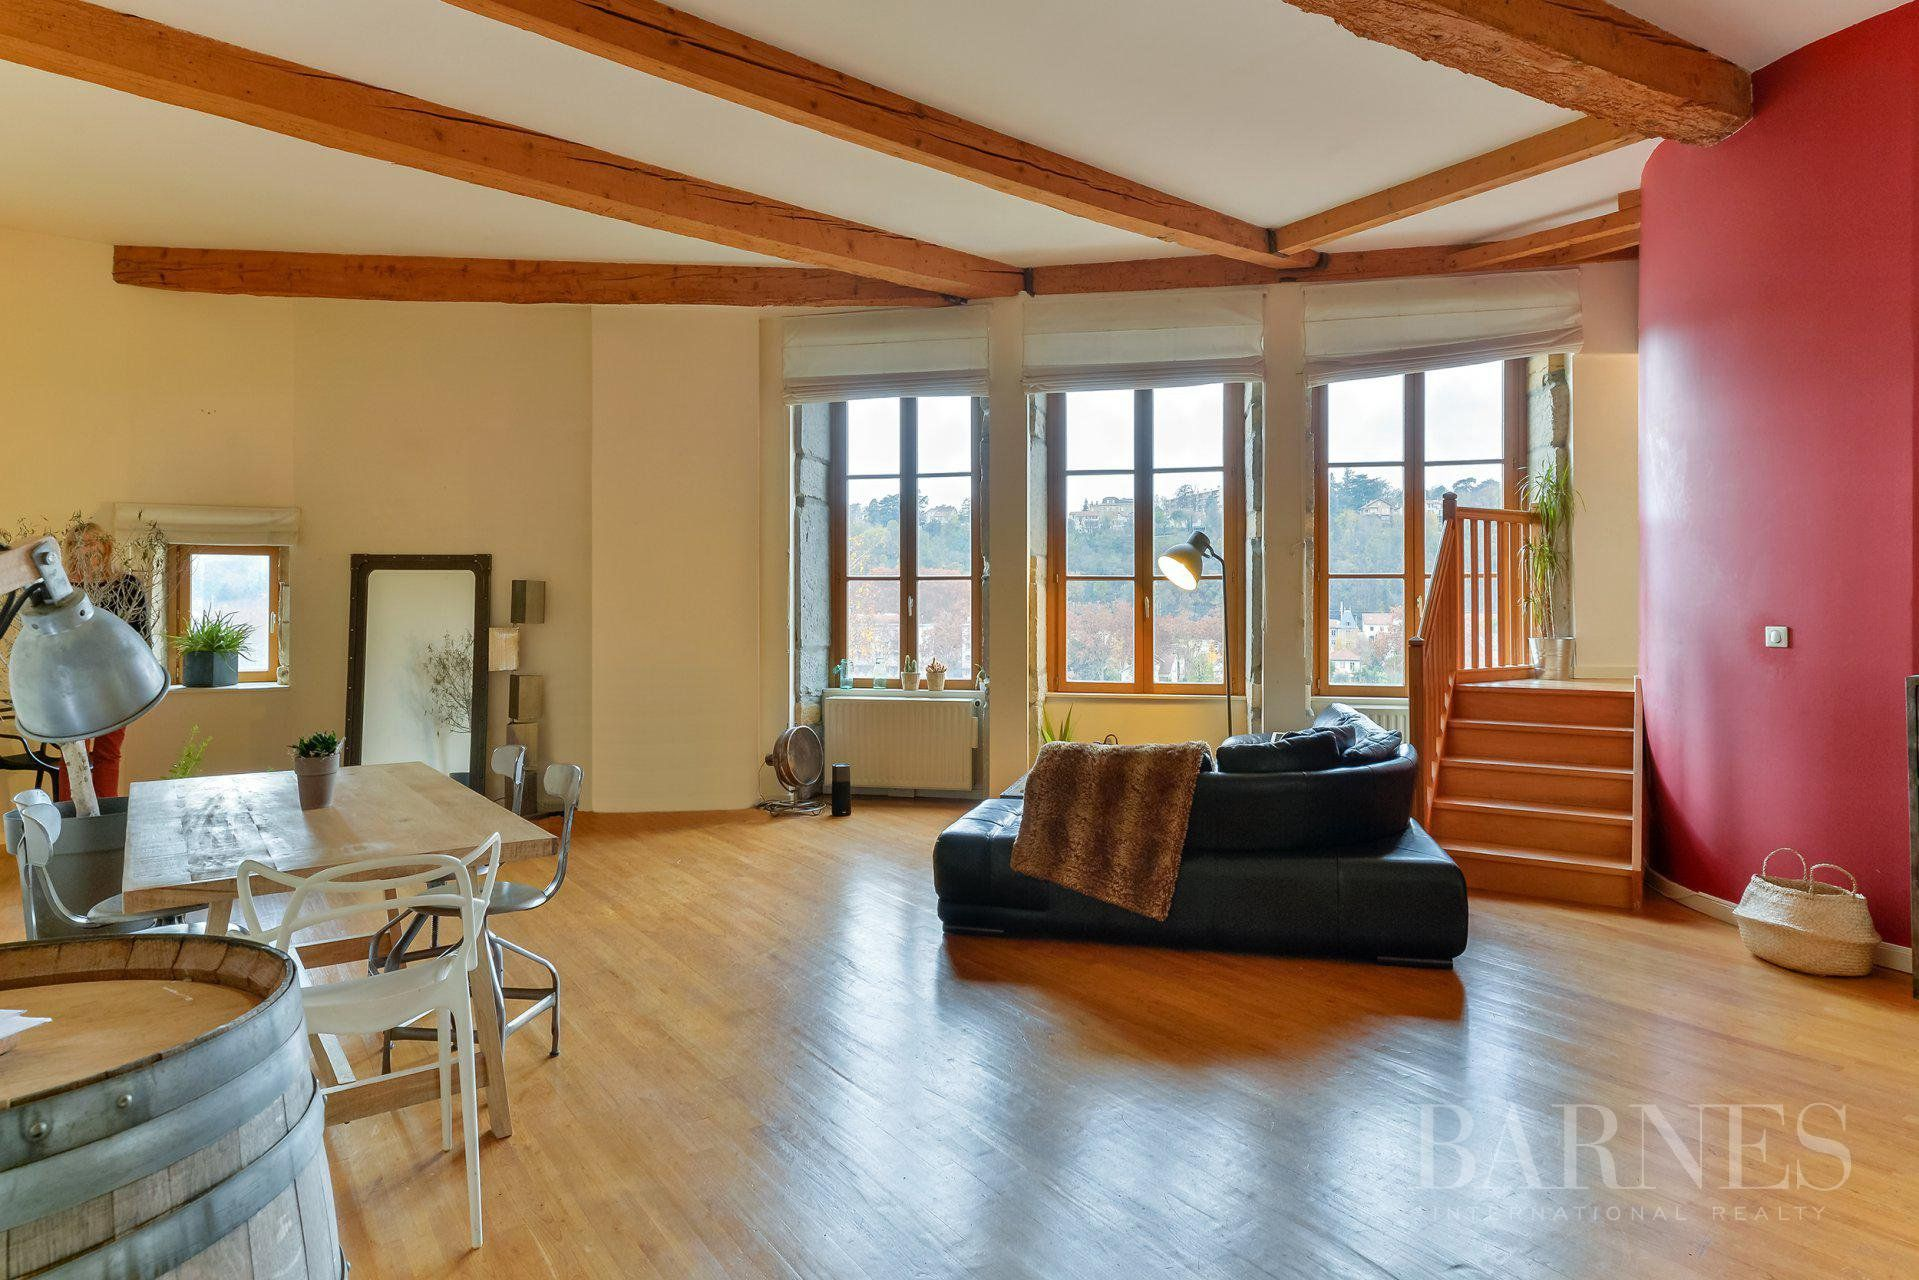 Caluire-et-Cuire - Apartment of 170 sqm in a castle - 3 bedrooms